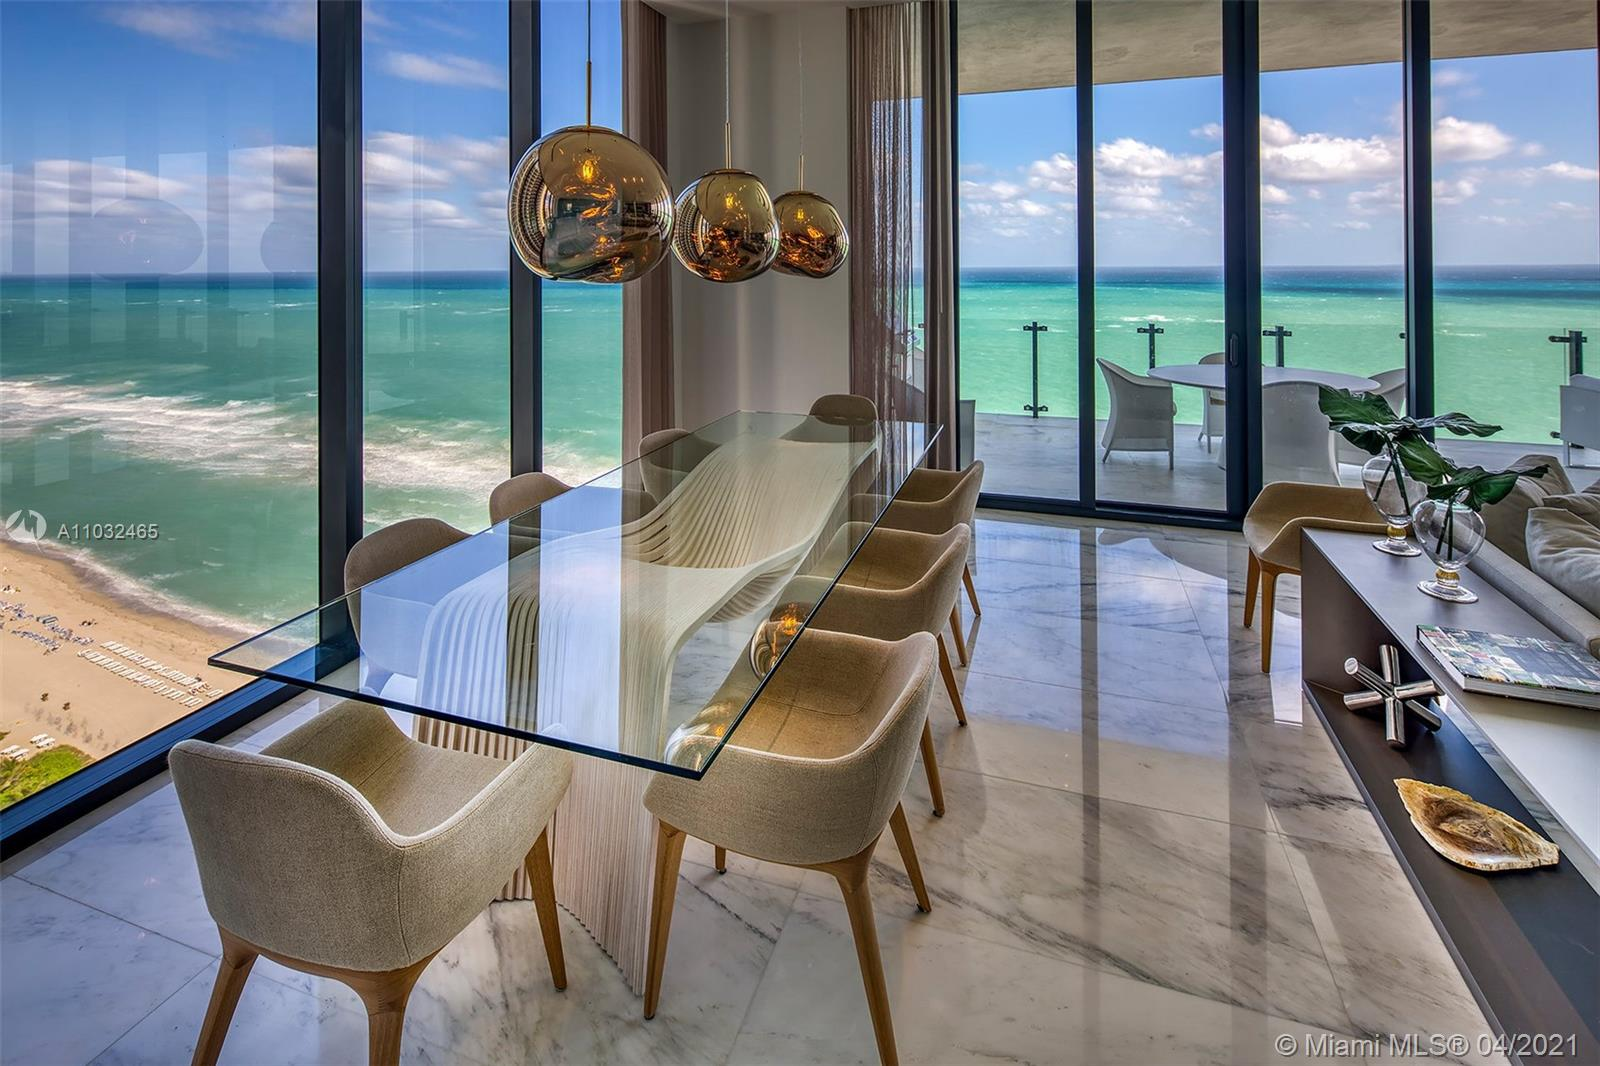 17141 Collins Ave, Unit #2201 Luxury Real Estate